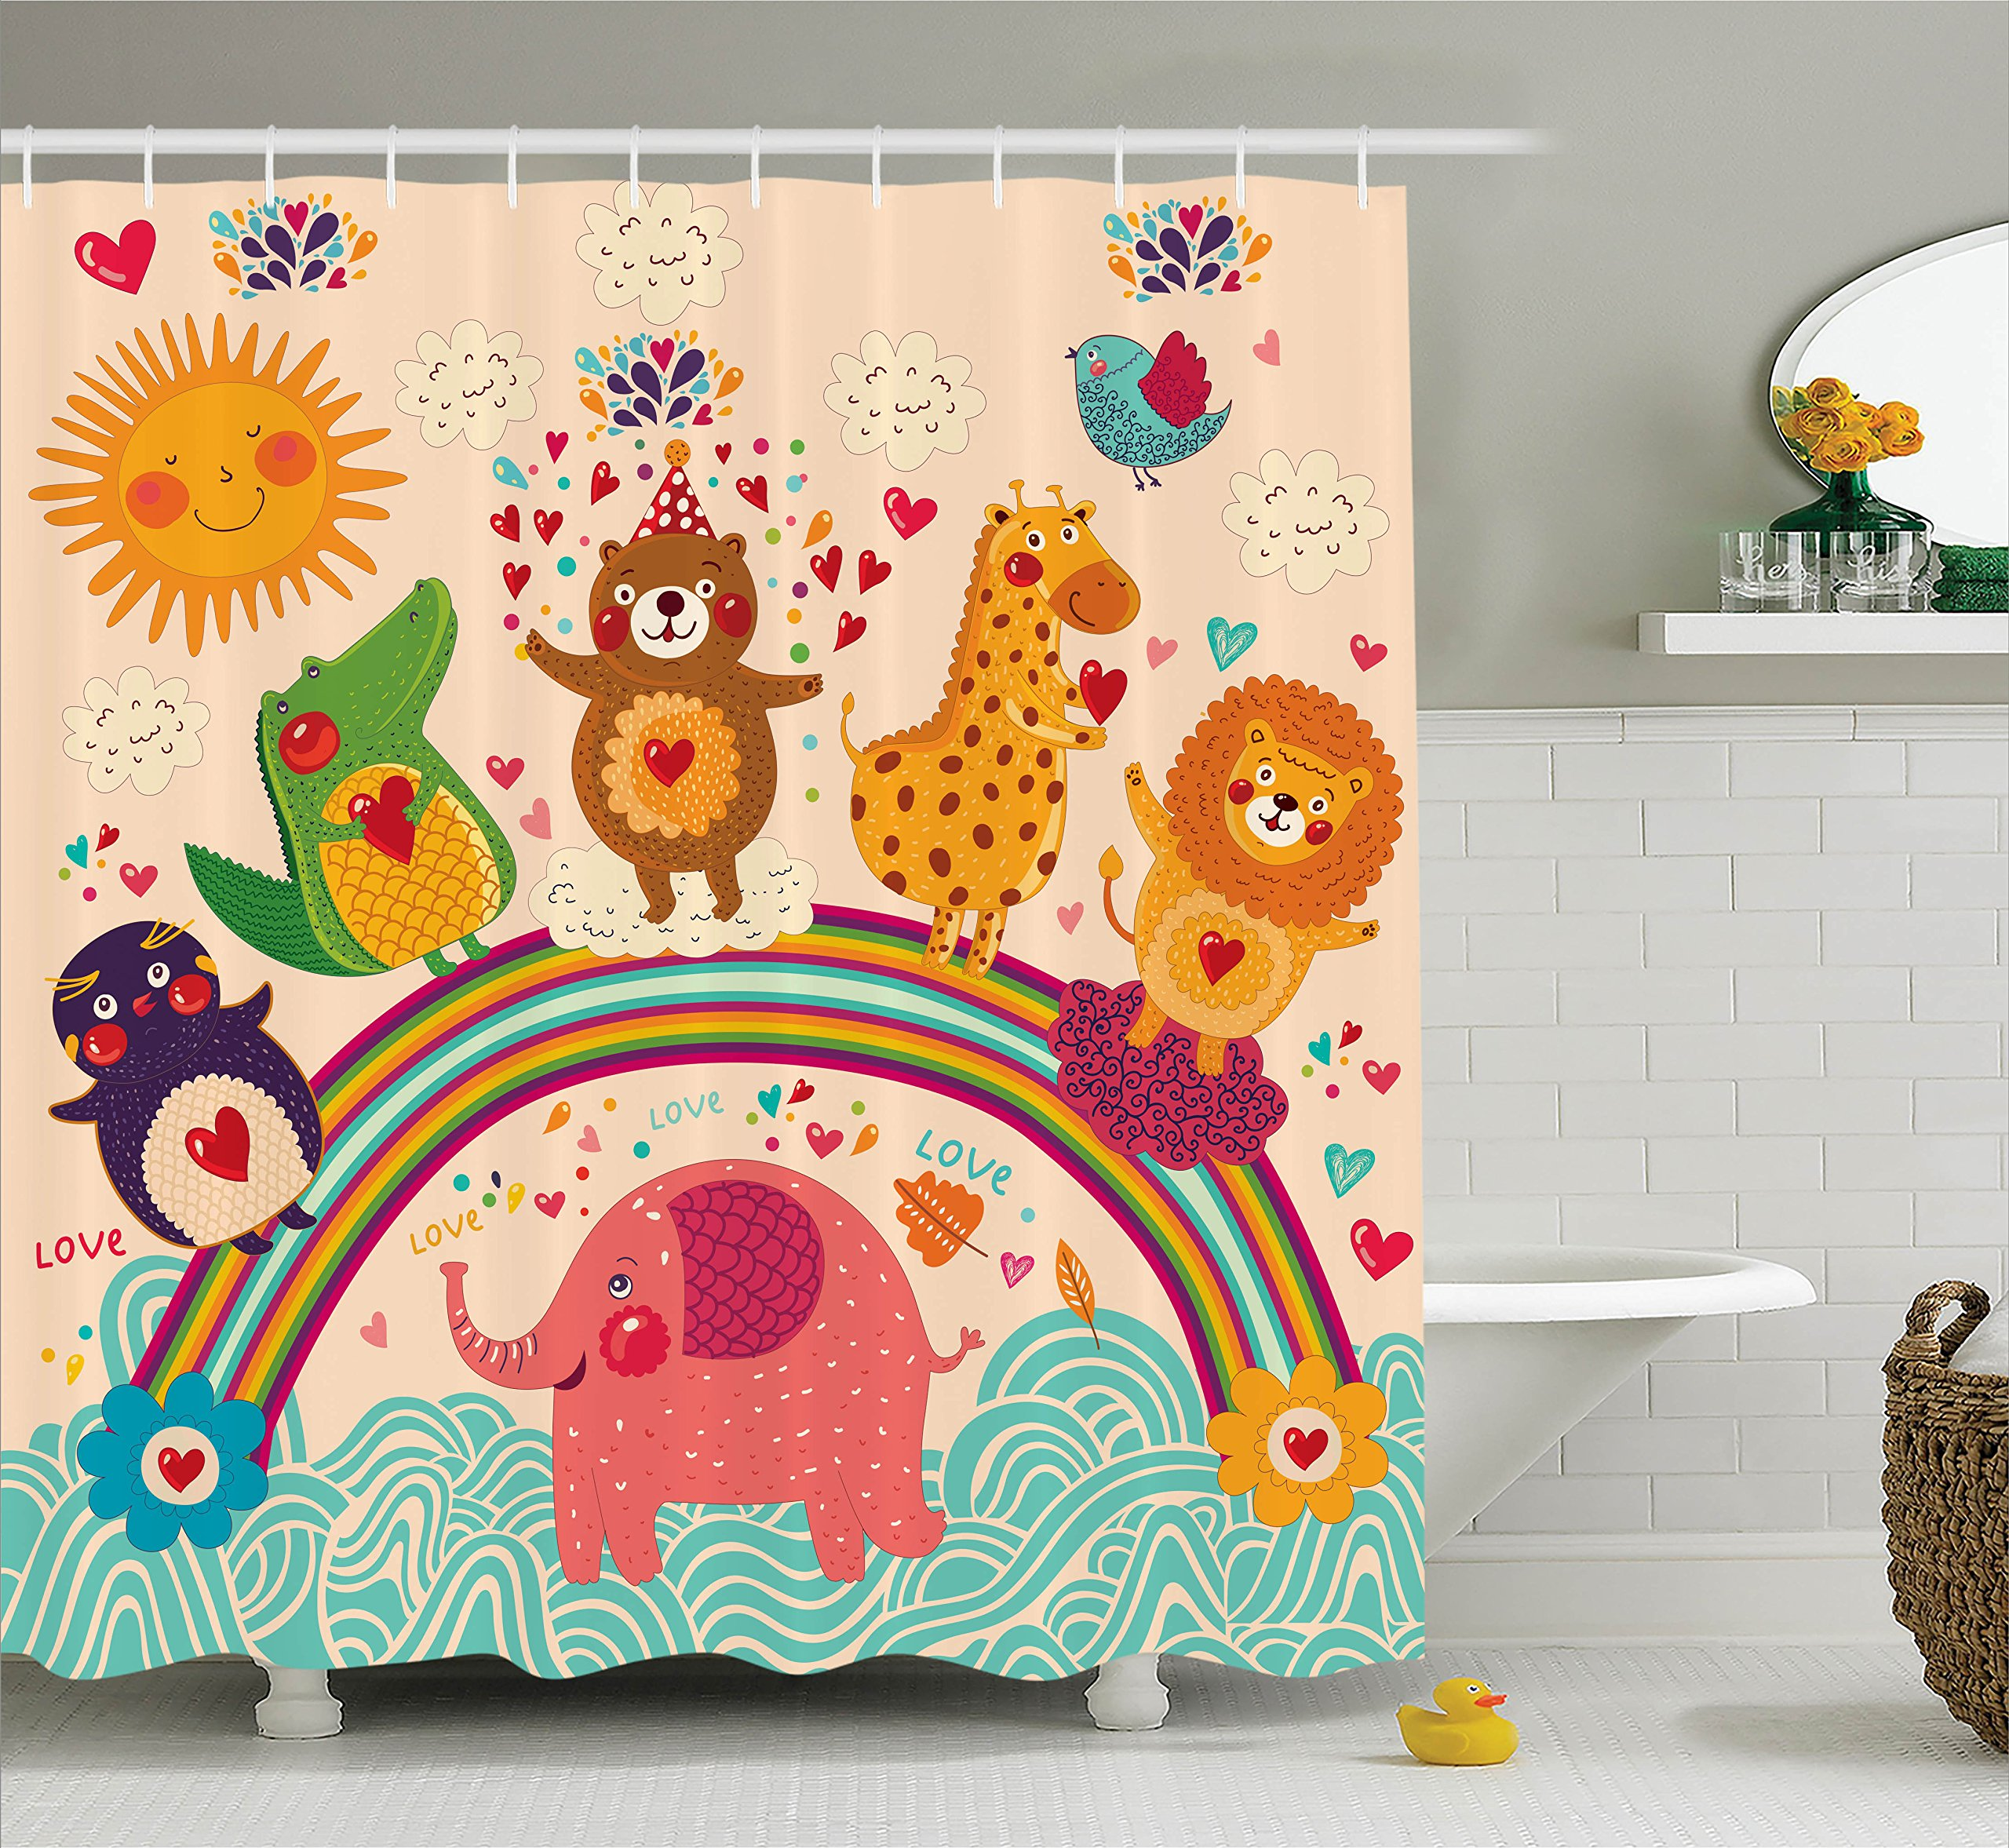 Ambesonne Cartoon Decor Collection, Happy Animals Bear Lion Elephant Crocodile Birds on Rainbow Children Drawing Effect, Polyester Fabric Bathroom Shower Curtain, 75 Inches Long, Orange Green